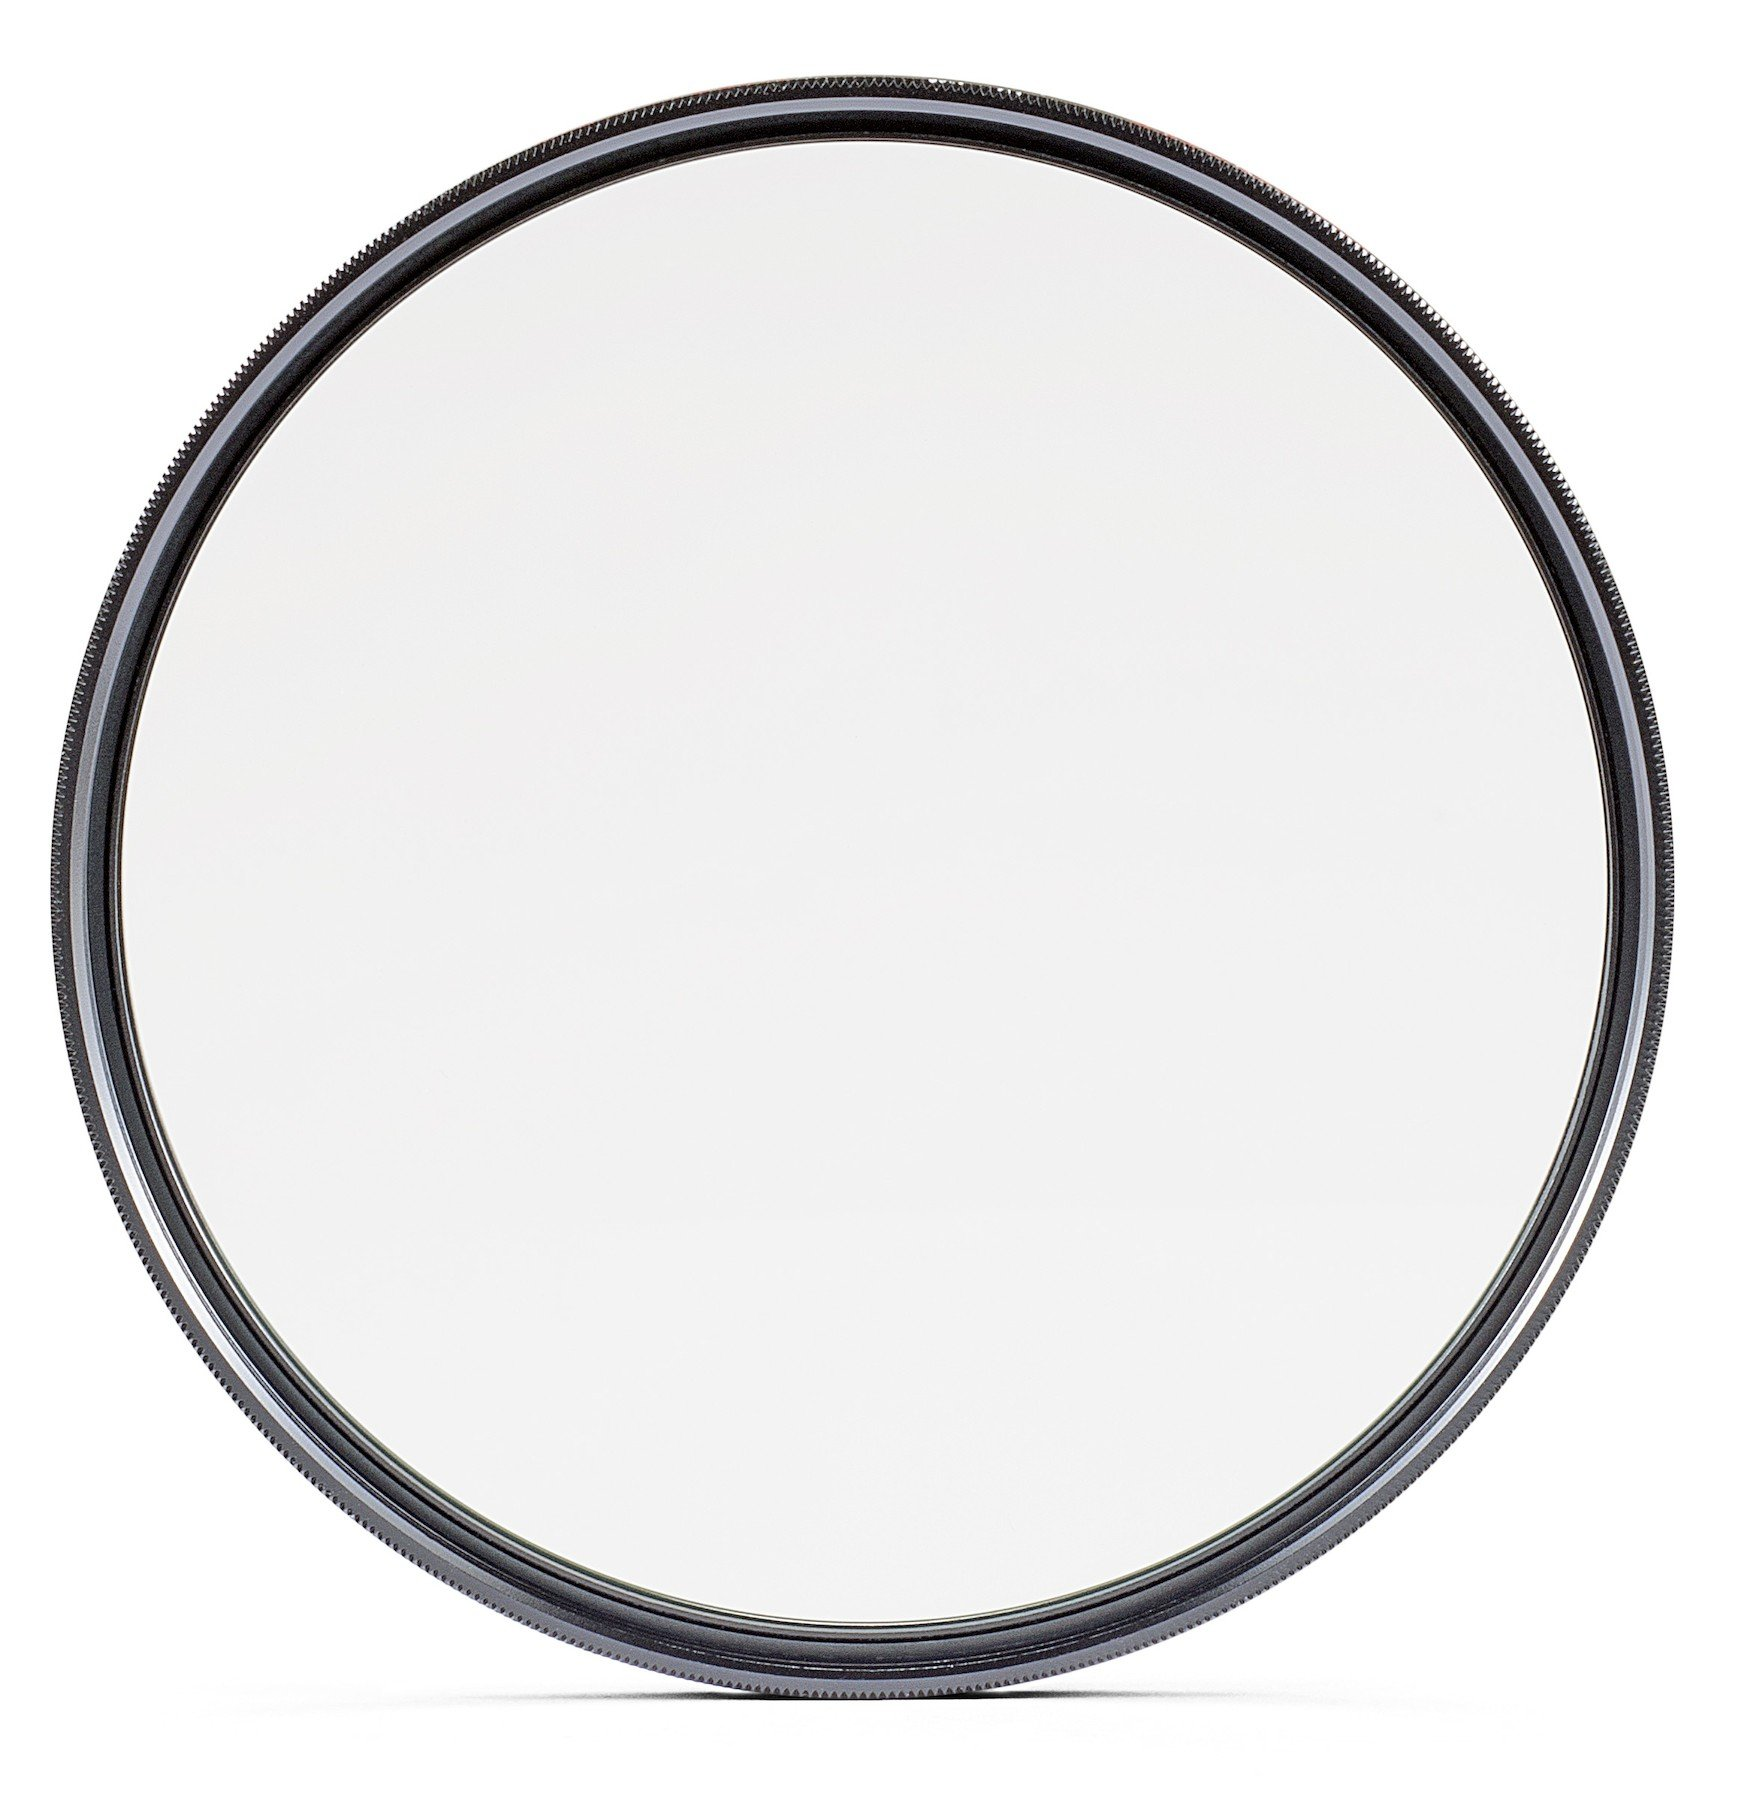 58mm Professional Protect Filter